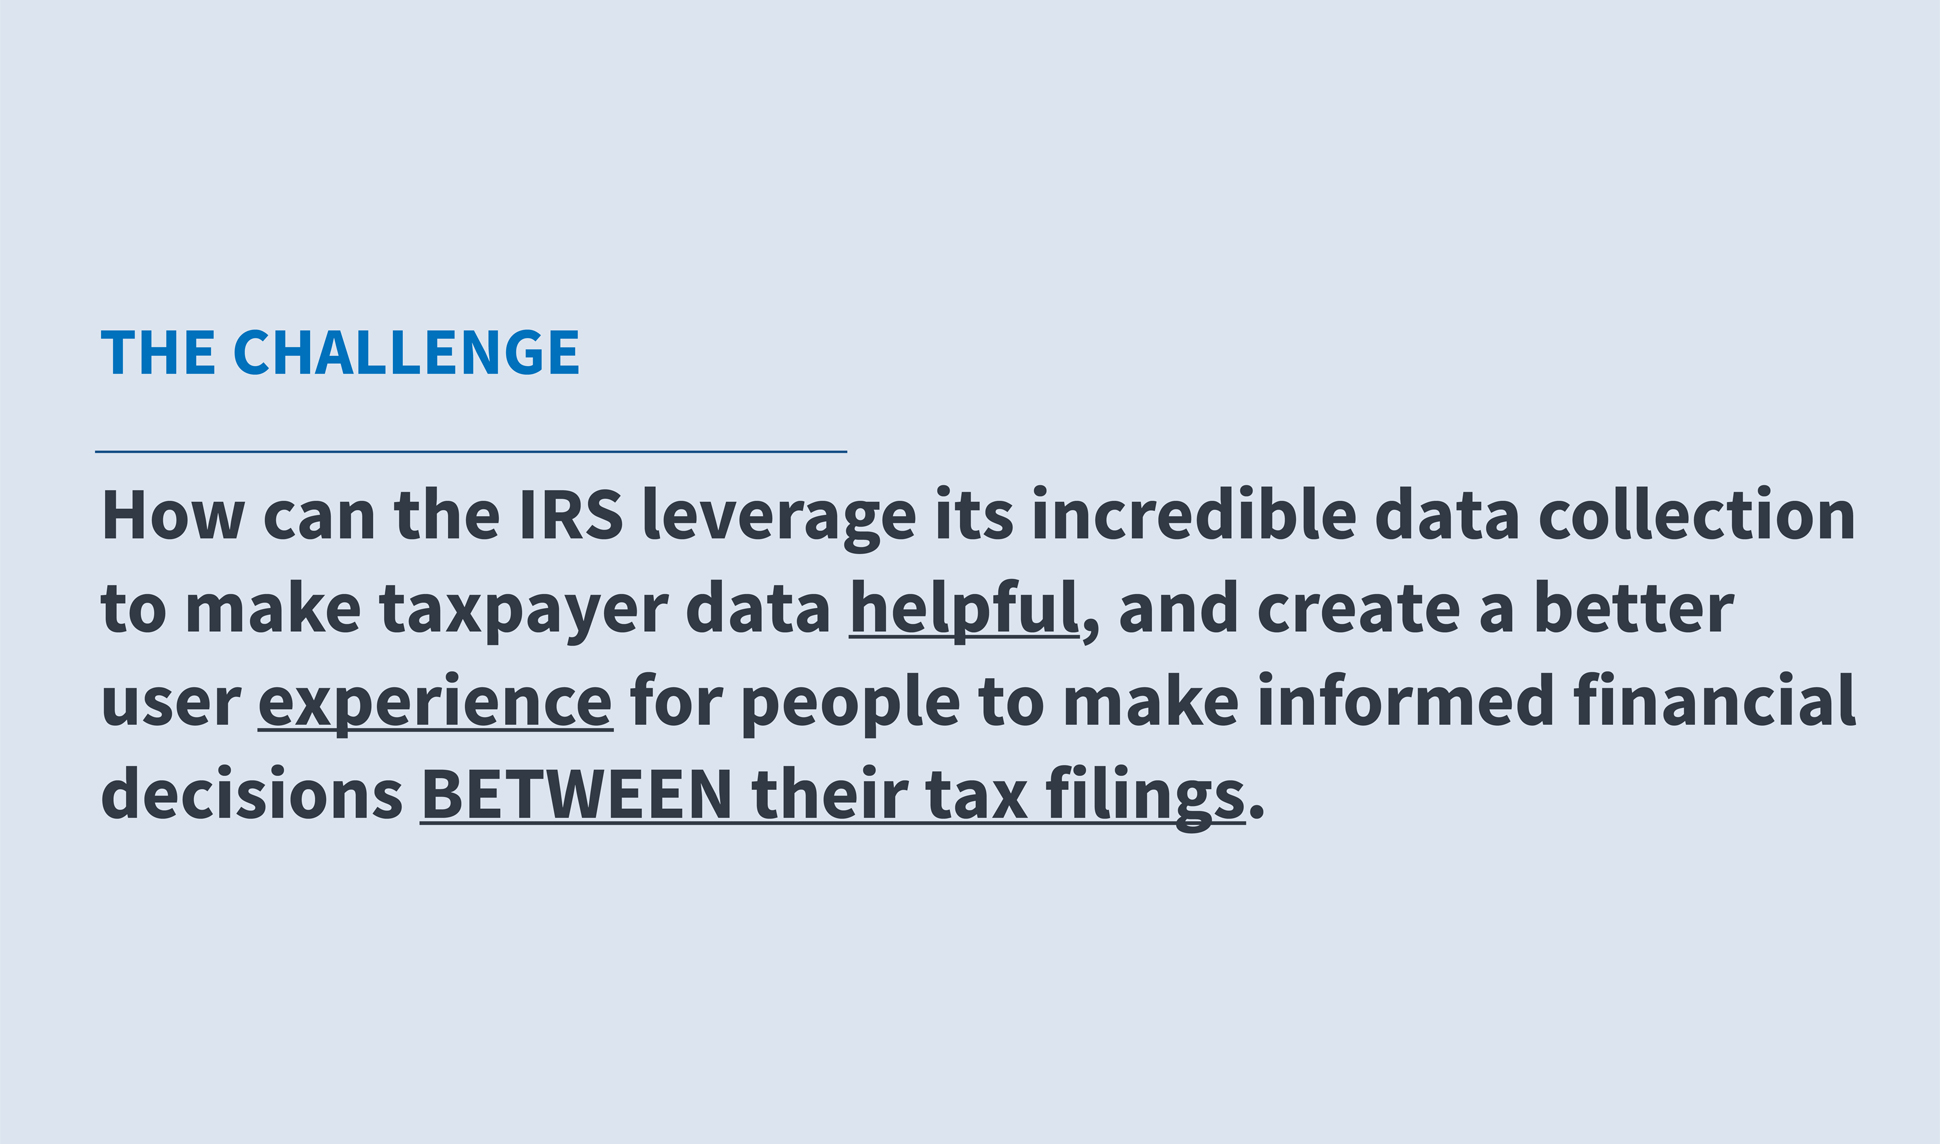 A page from a tax design challenge submission. The Challenge: How can the IRS leverage its incredible data collection to make taxpayer data helpful, and create a better user experience for people to make informed financial decisions between their tax filings.